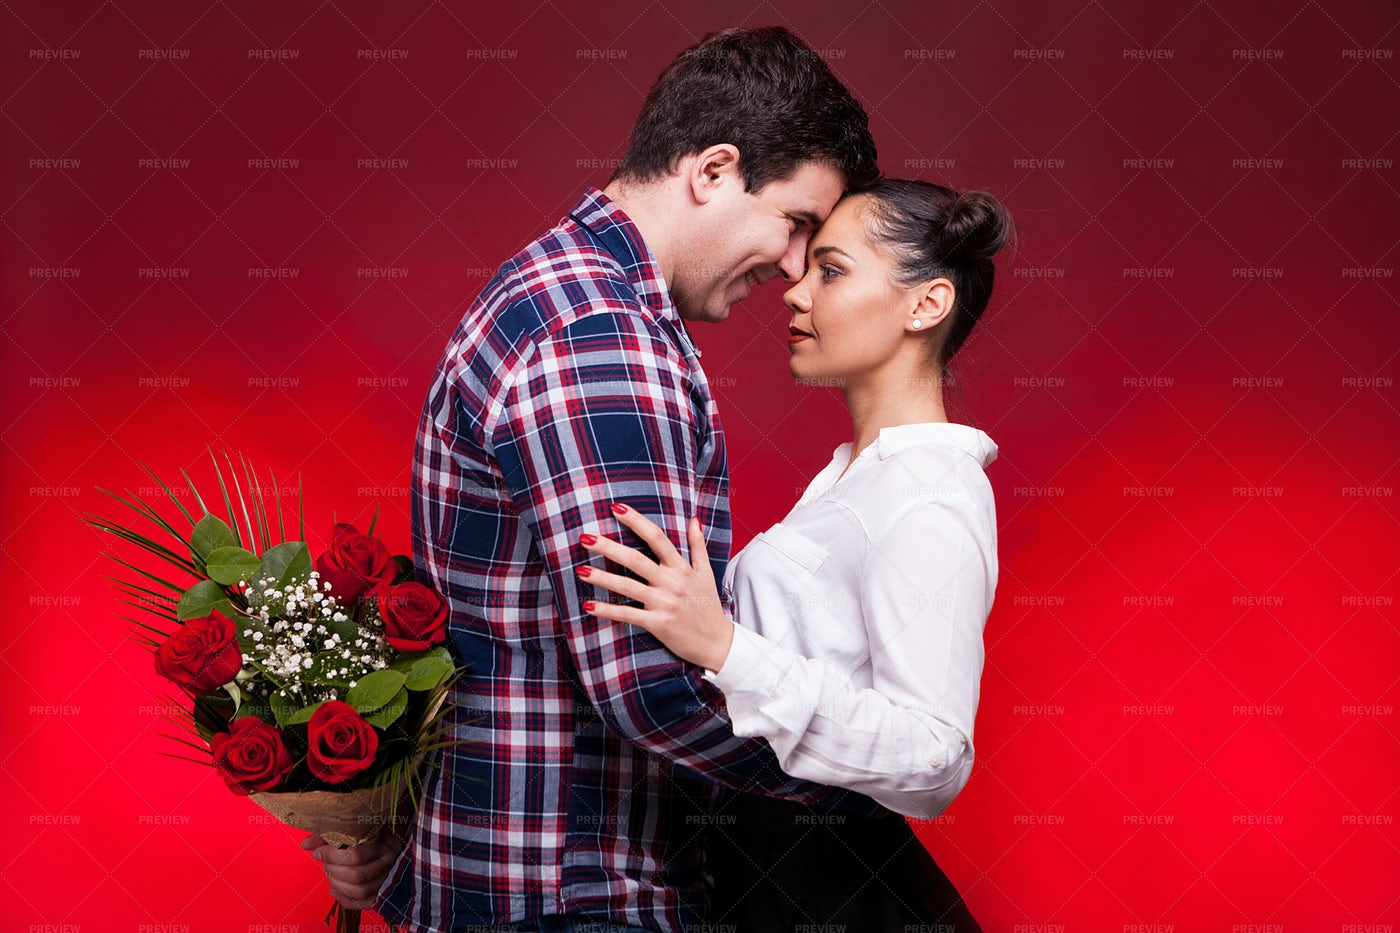 Man With A Roses Bouquet At His Back: Stock Photos